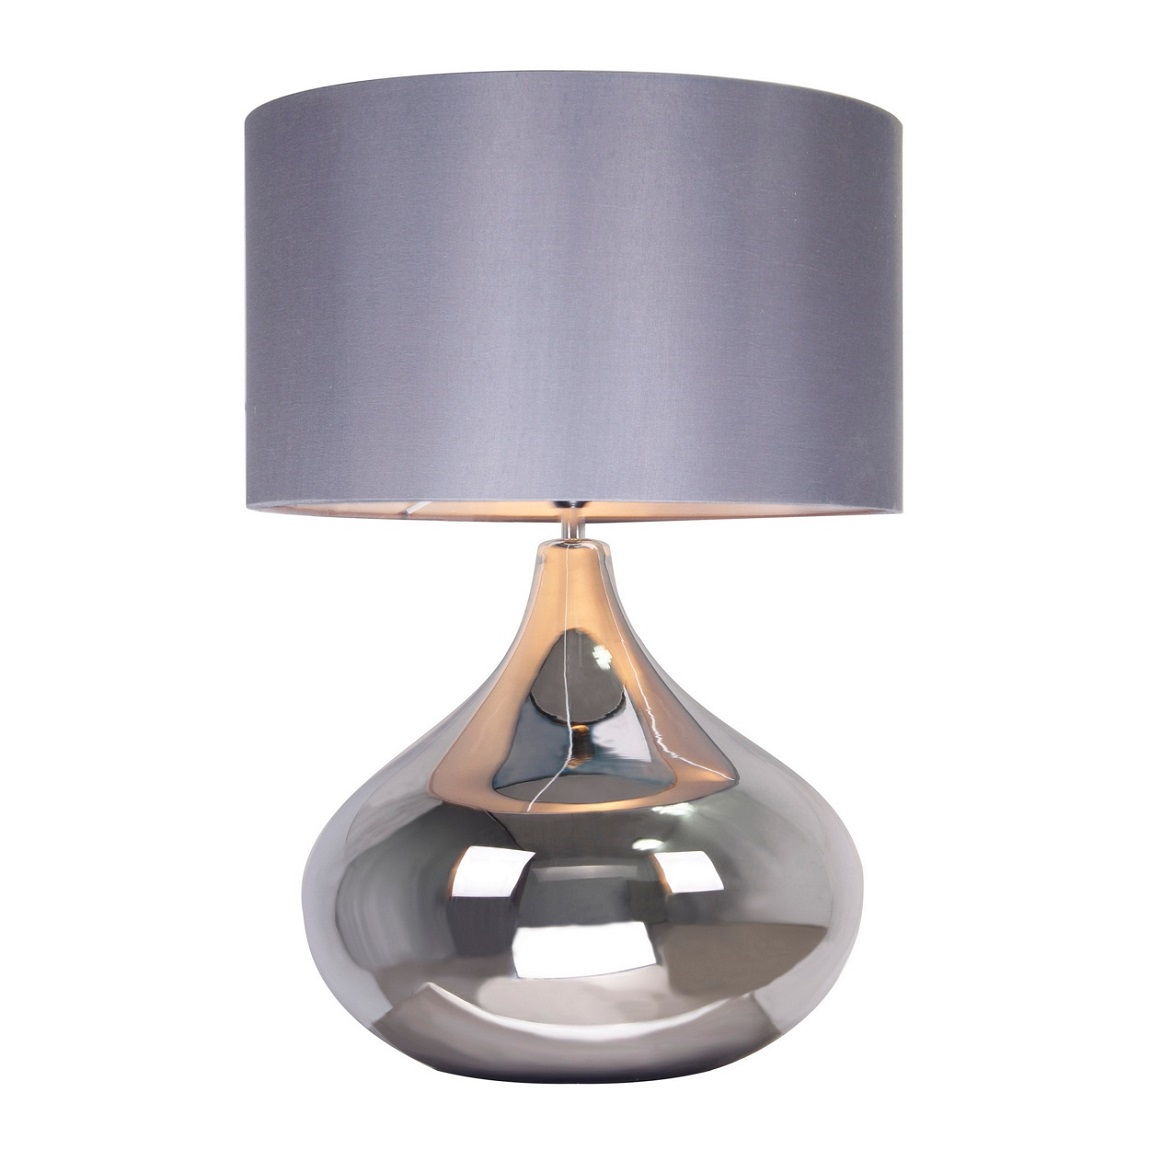 Bedroom Reading Lamps Debenhams Home Collection Claire Table Lamp Bedroom